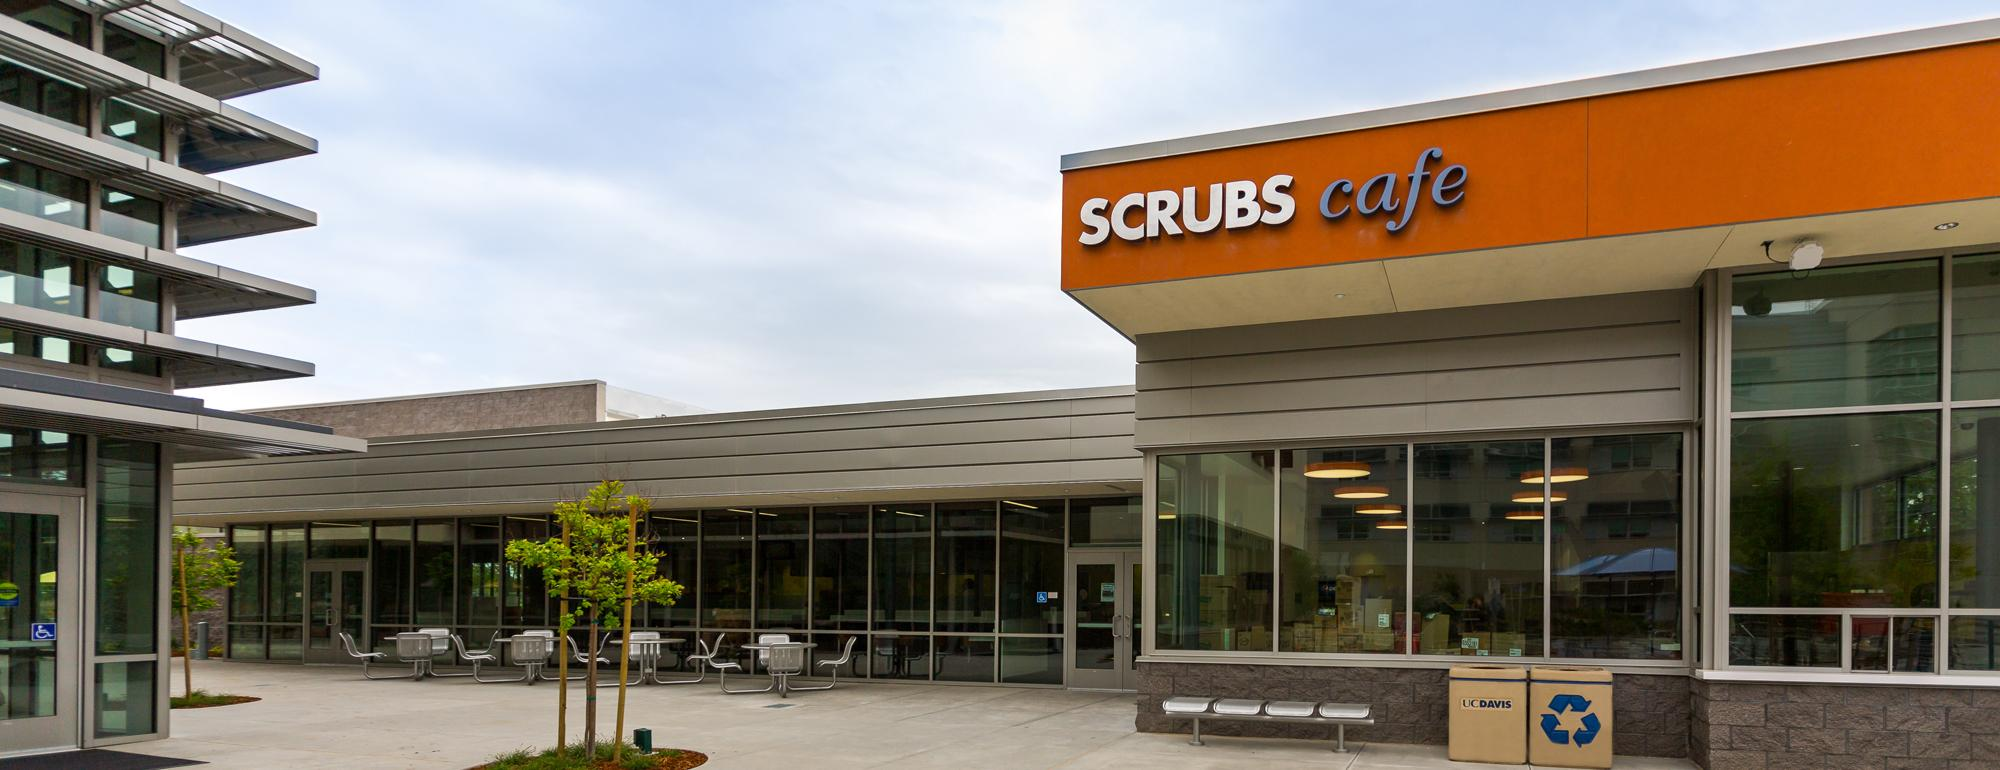 SCRUBS Cafe